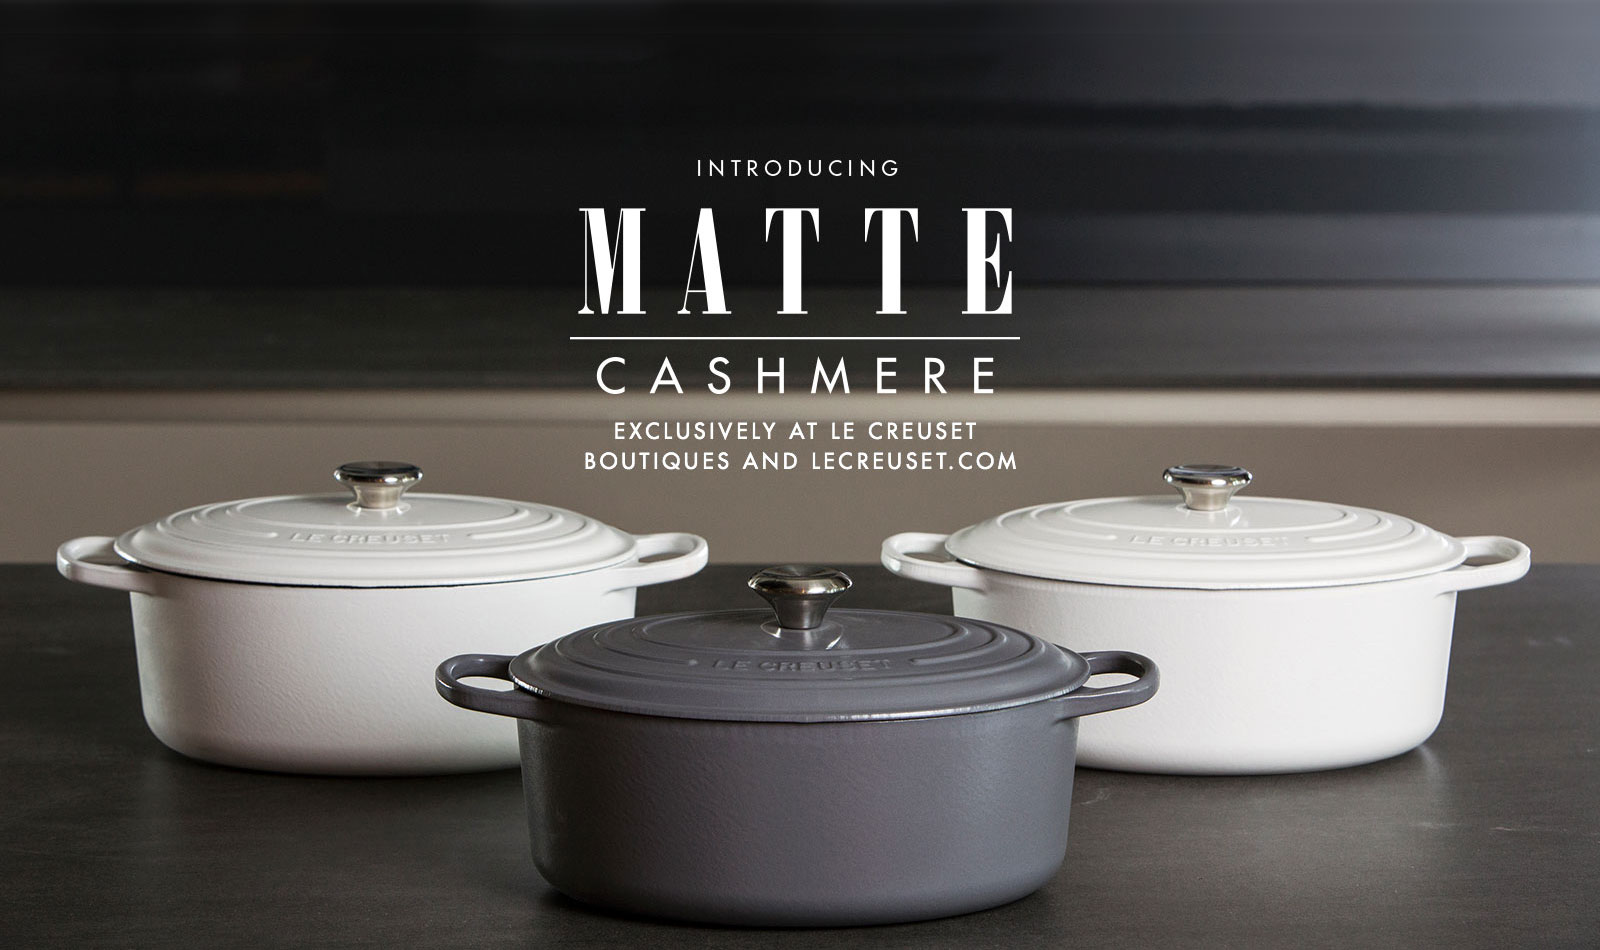 Introducing Matte Cashmere